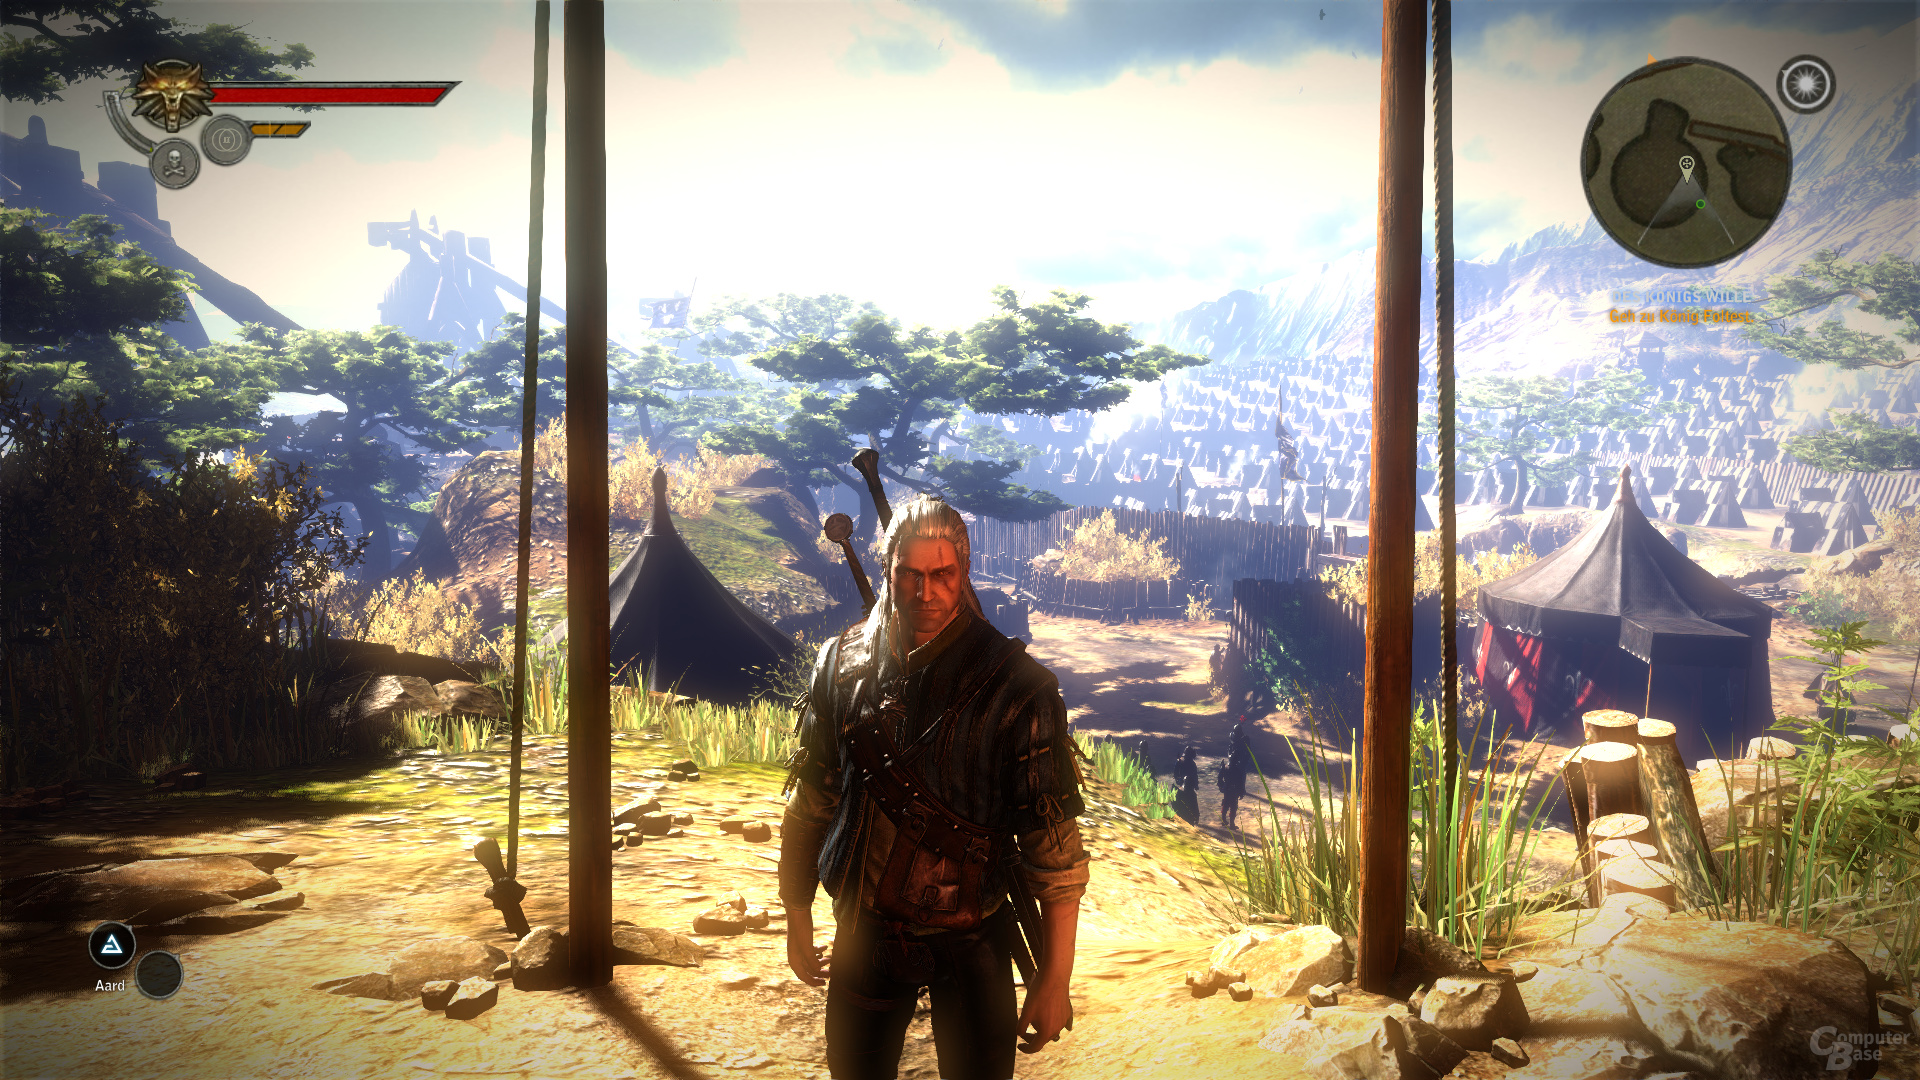 AMD GCN - The Witcher 2